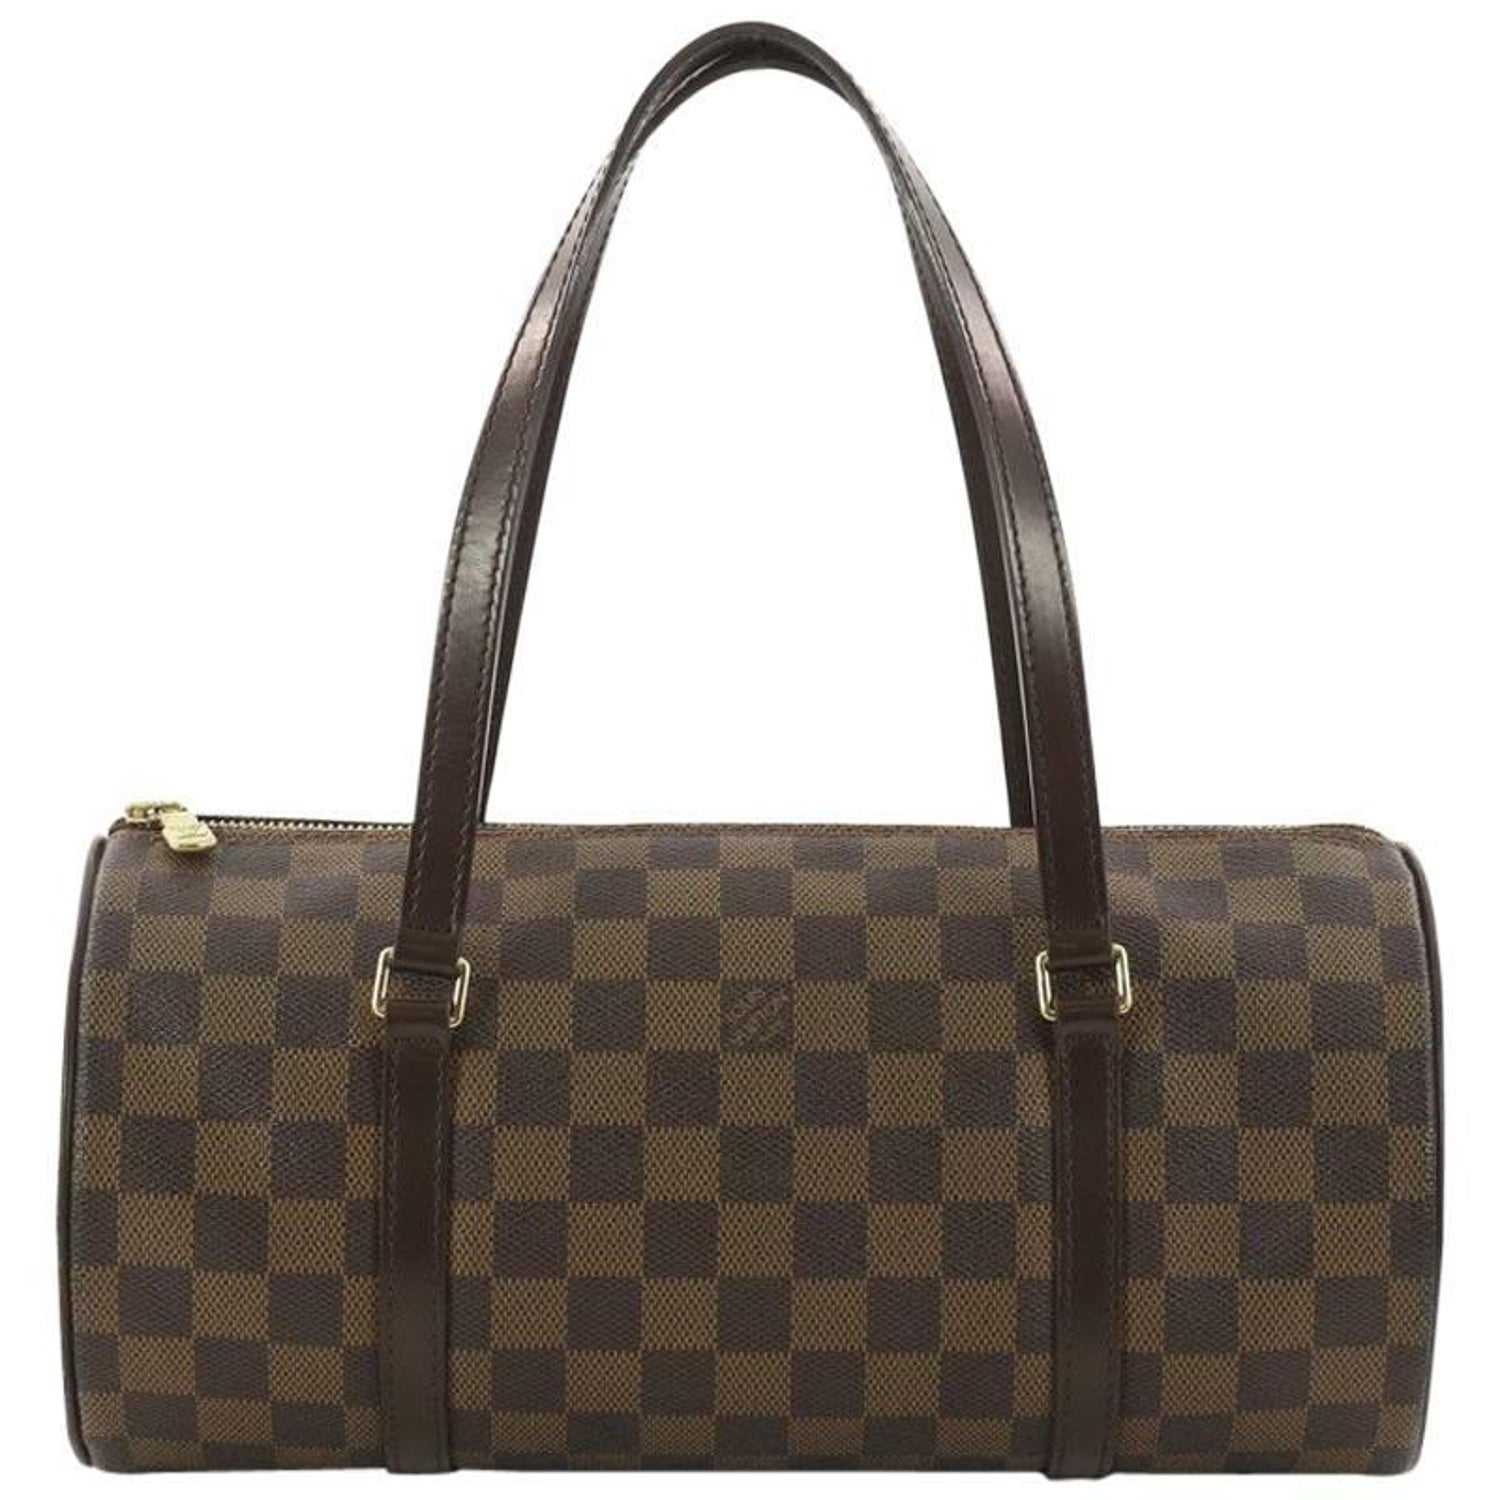 fc8dfbdc26e4 Louis Vuitton Papillon Handbag Damier 30 at 1stdibs